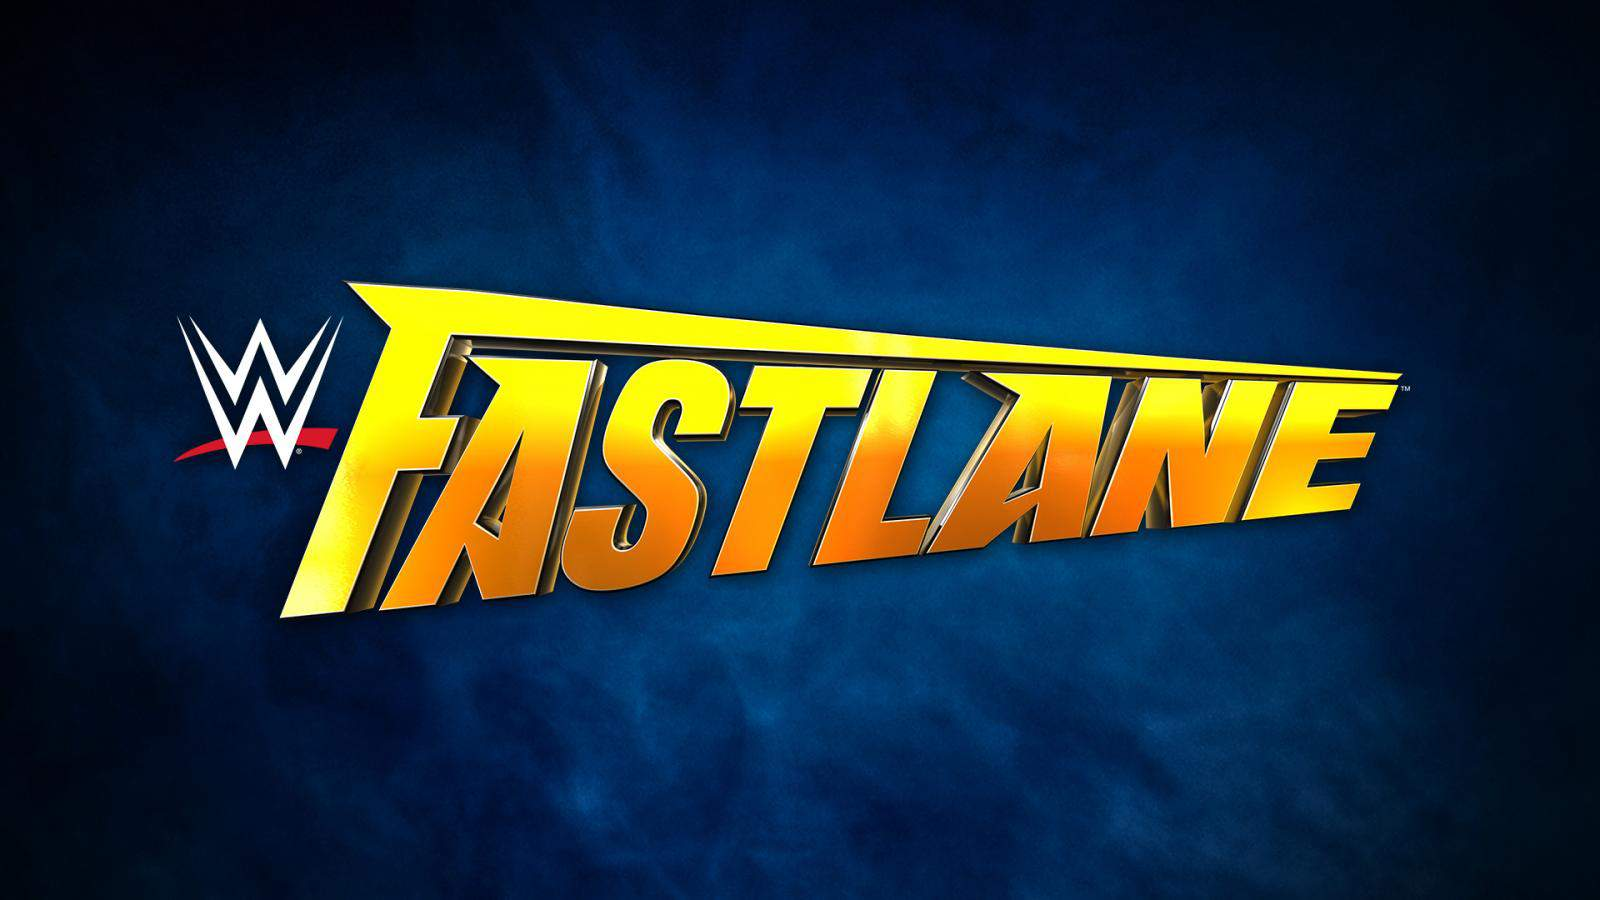 What's Happening at WWE Fastlane 2018